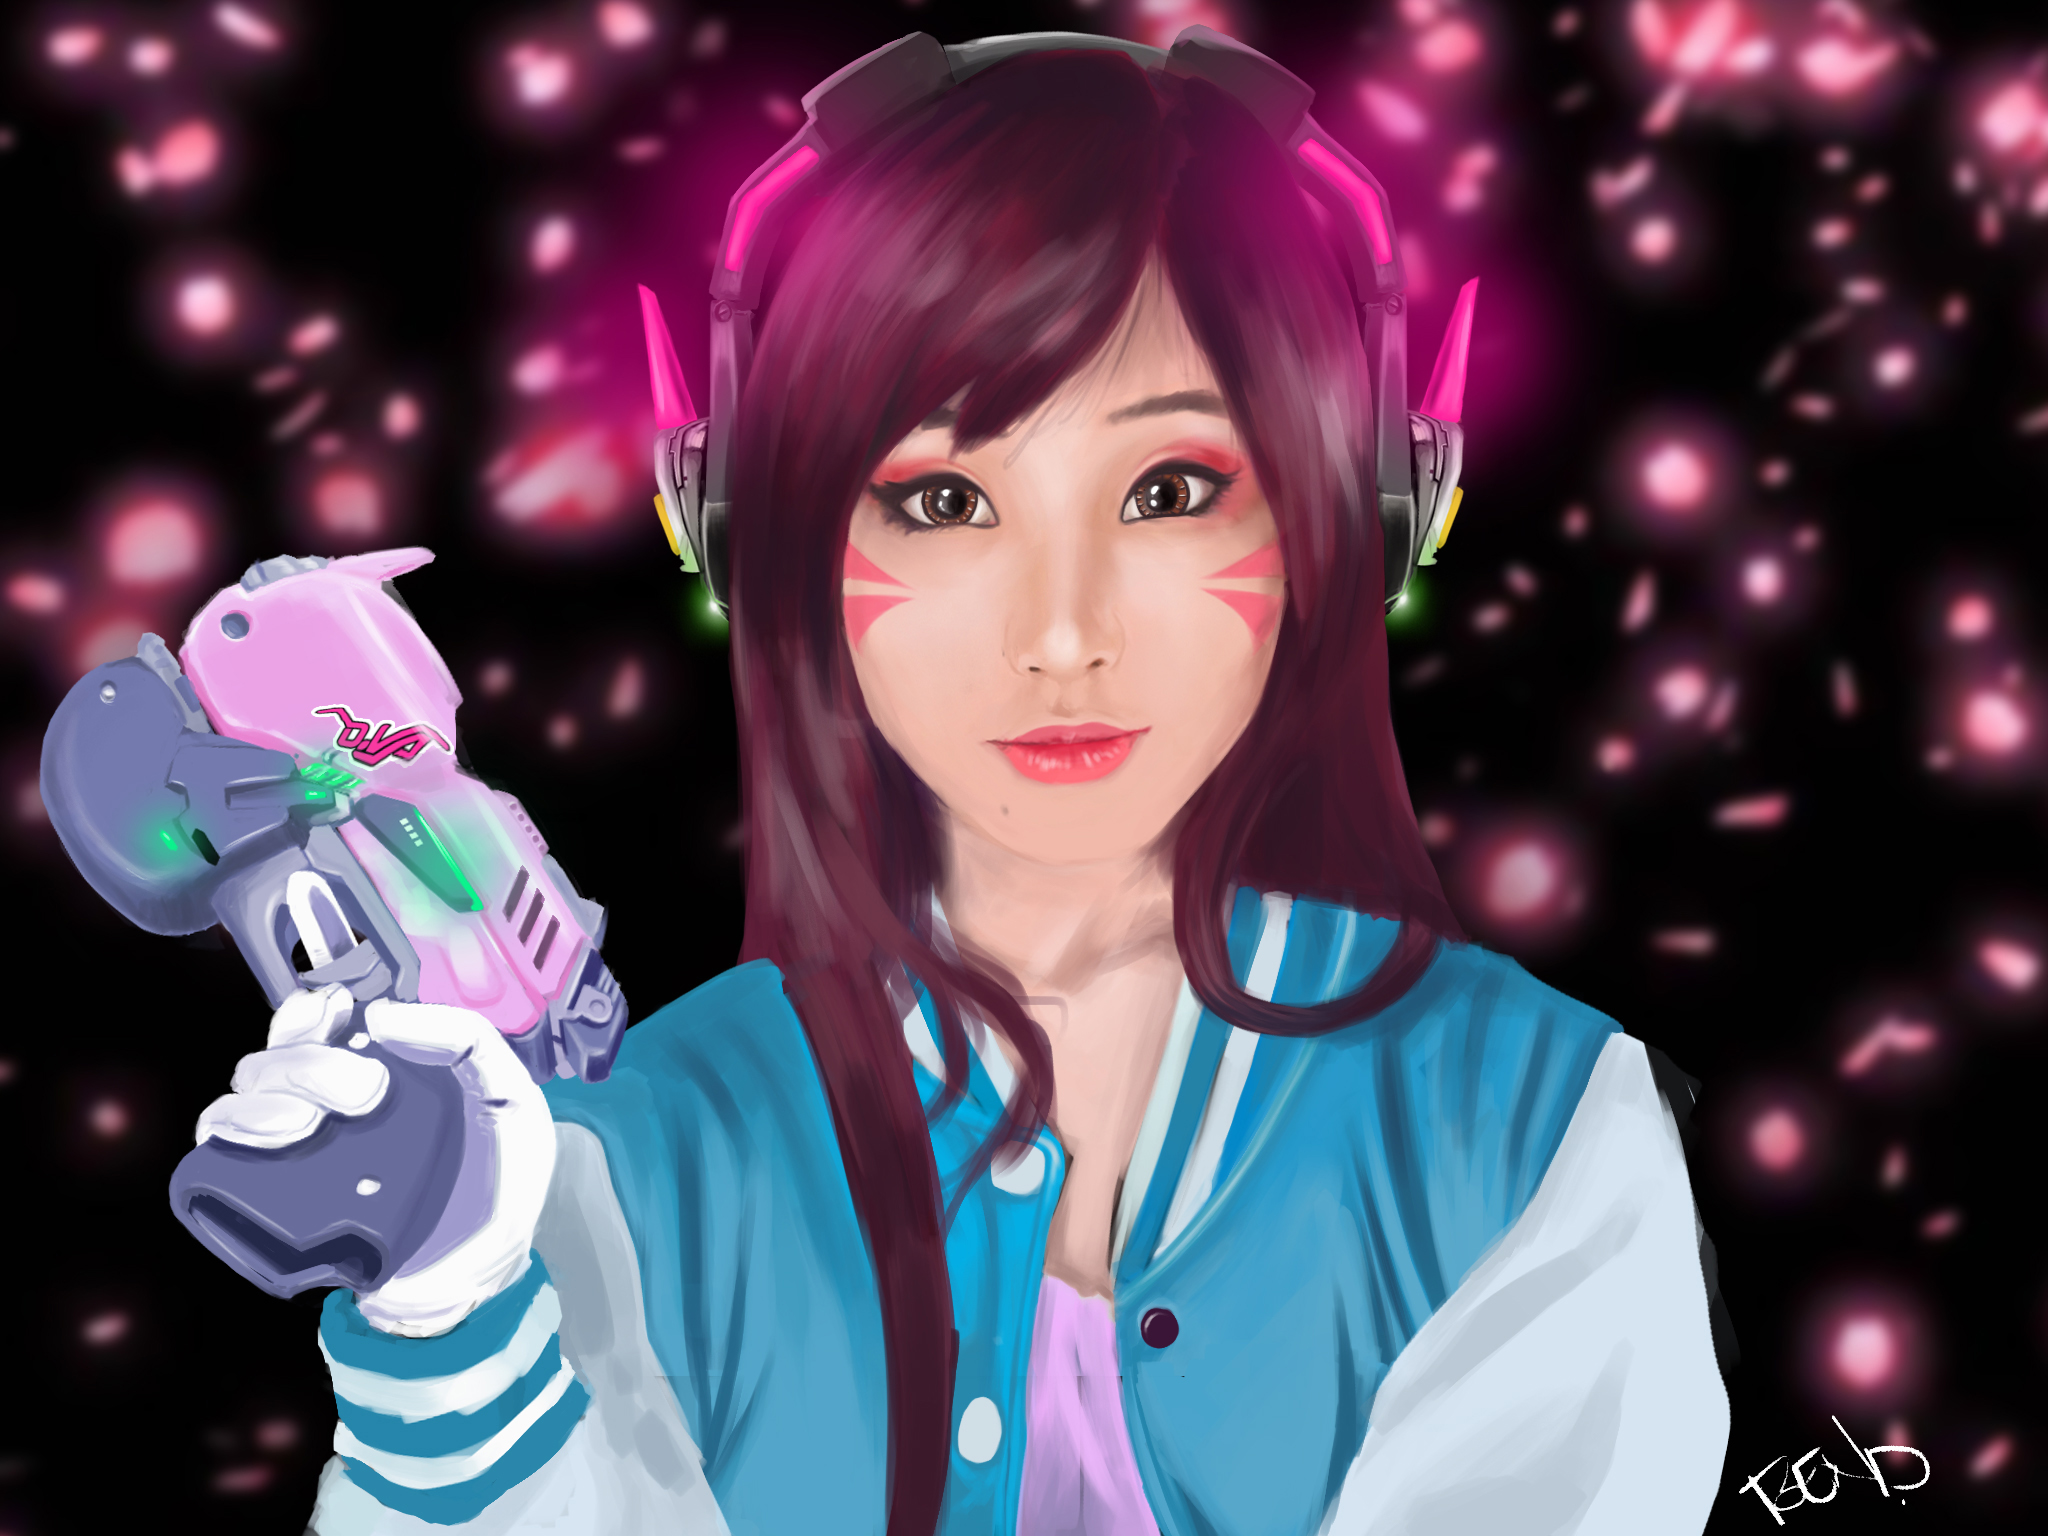 Beautiful_D.va02.jpg